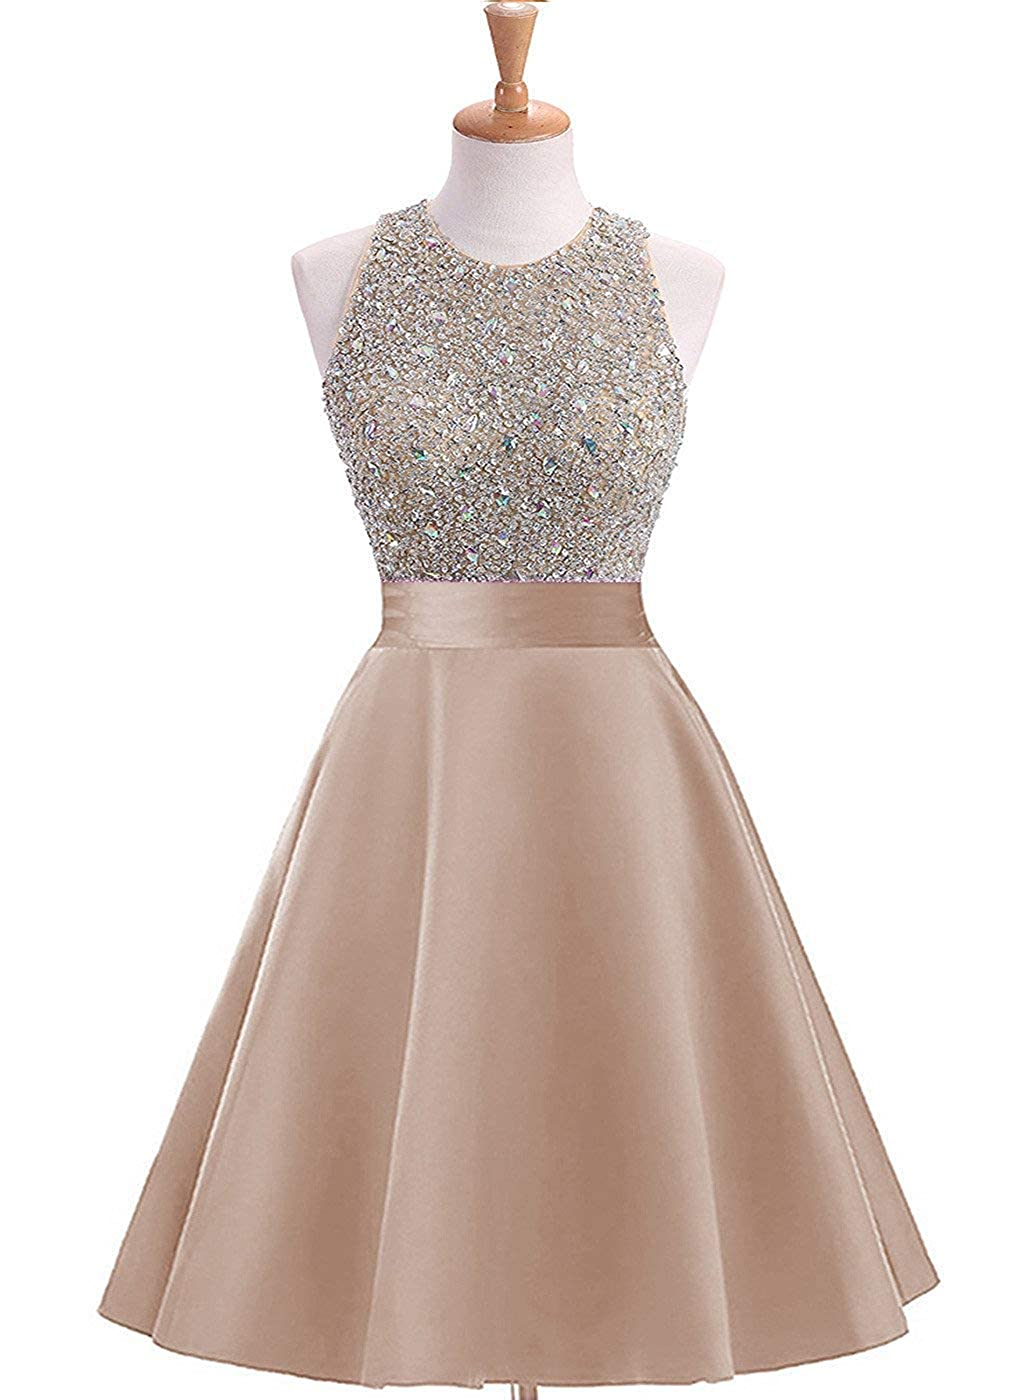 Champagnea Yuki Isabelle Women's Sequined Halter Cocktail Party Dress Satin Homecoming Dresses Short